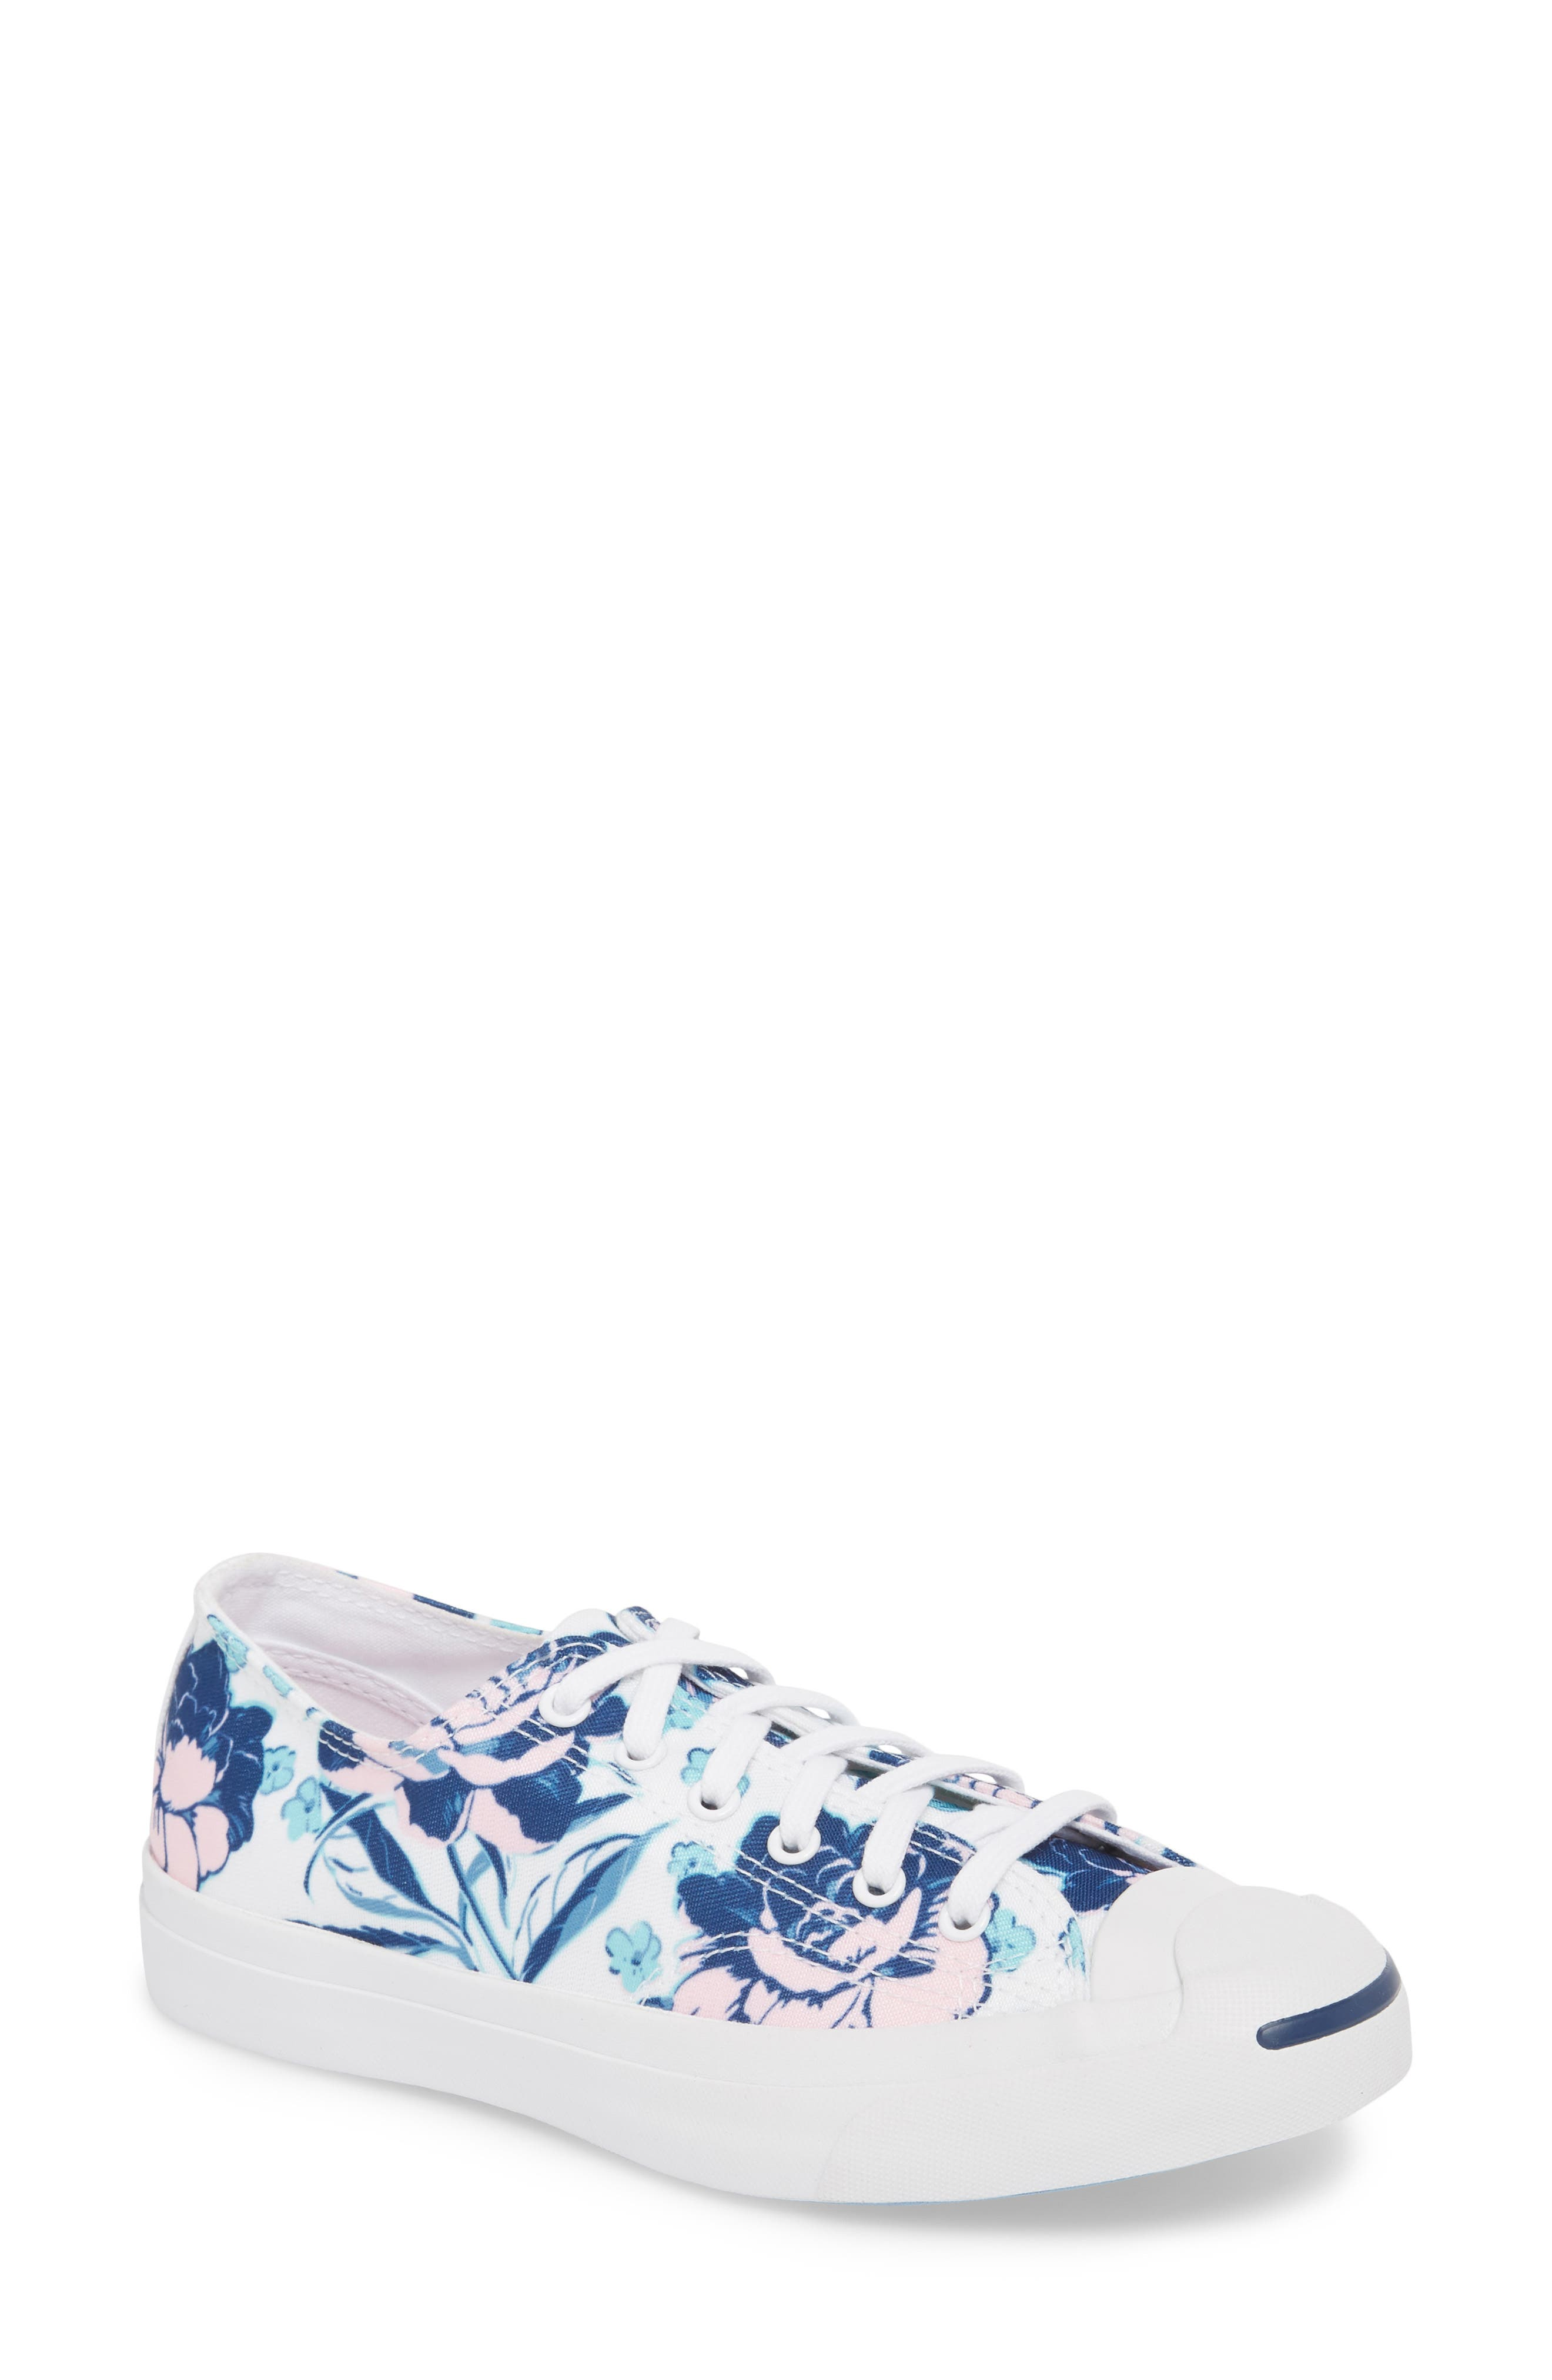 ,                             Jack Purcell Low Top Sneaker,                             Main thumbnail 25, color,                             114